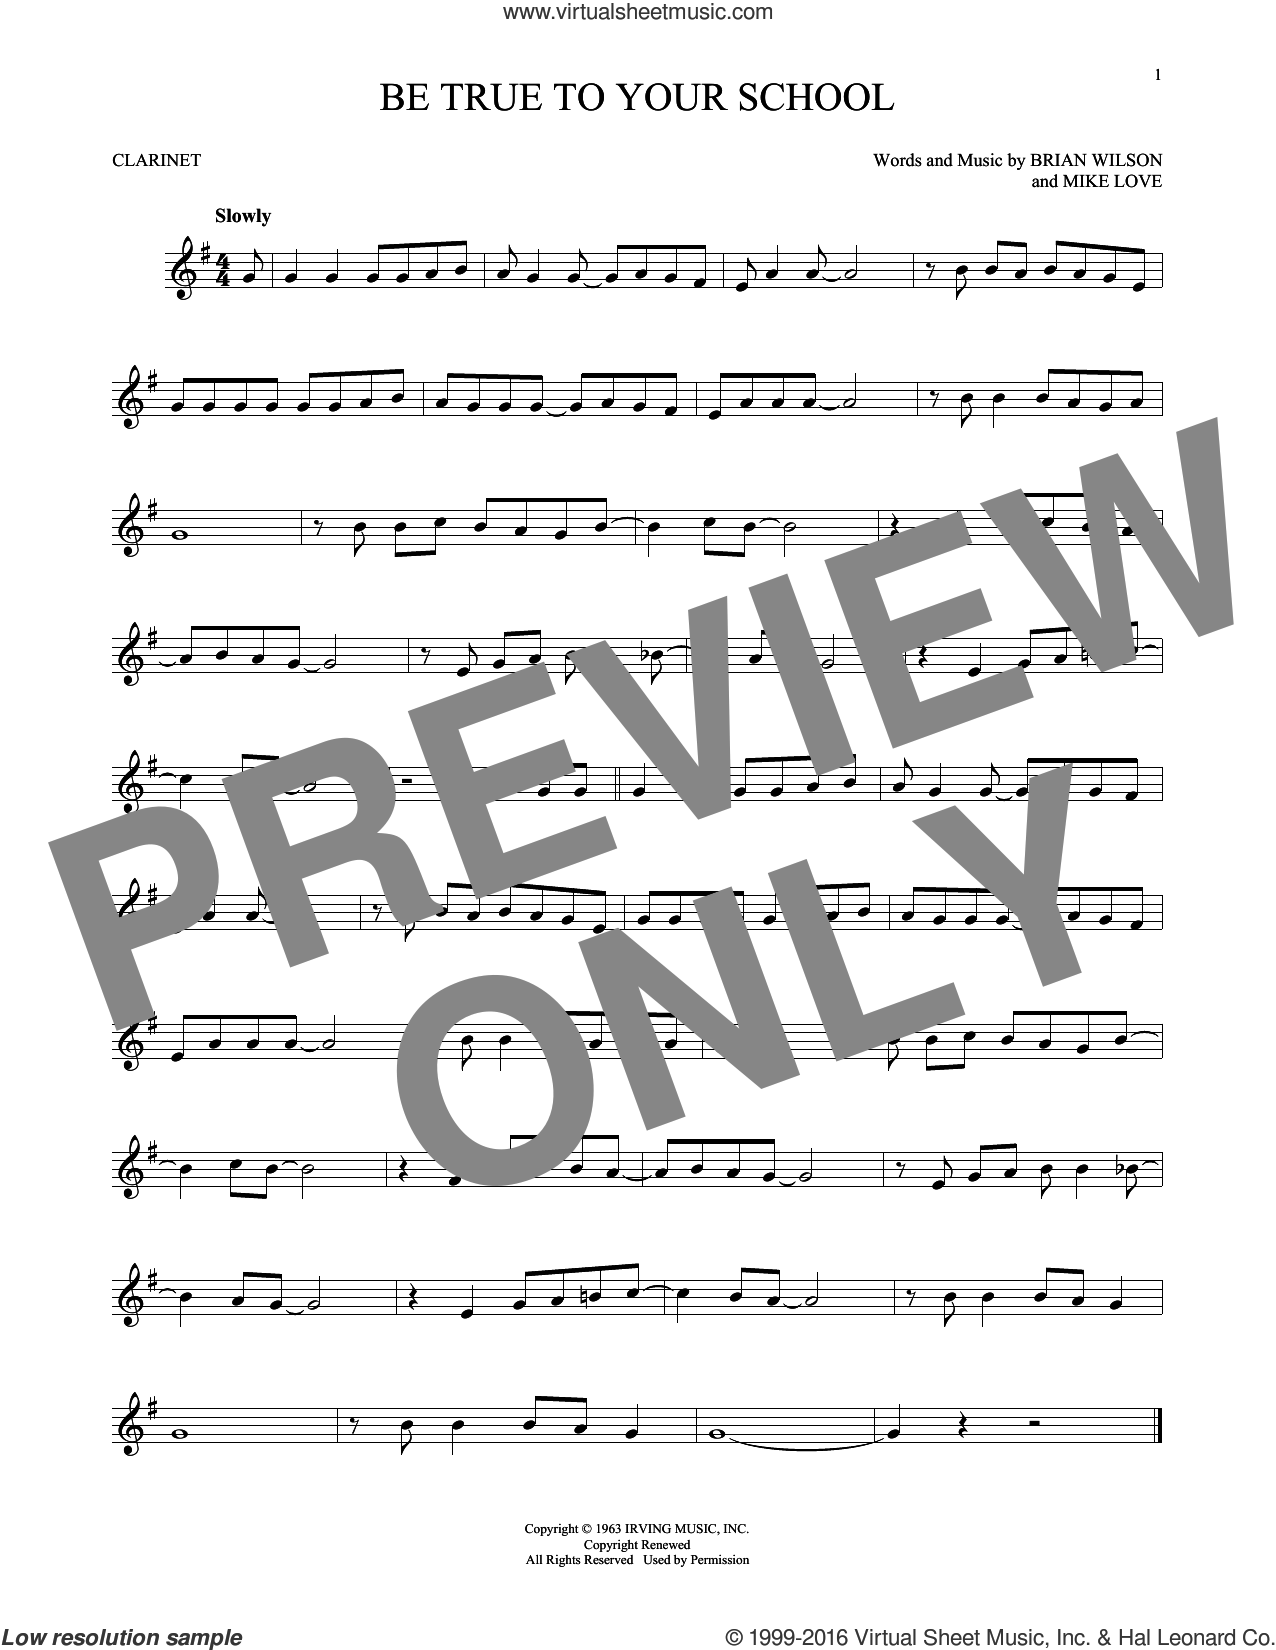 Be True To Your School sheet music for clarinet solo by The Beach Boys, Brian Wilson and Mike Love, intermediate skill level